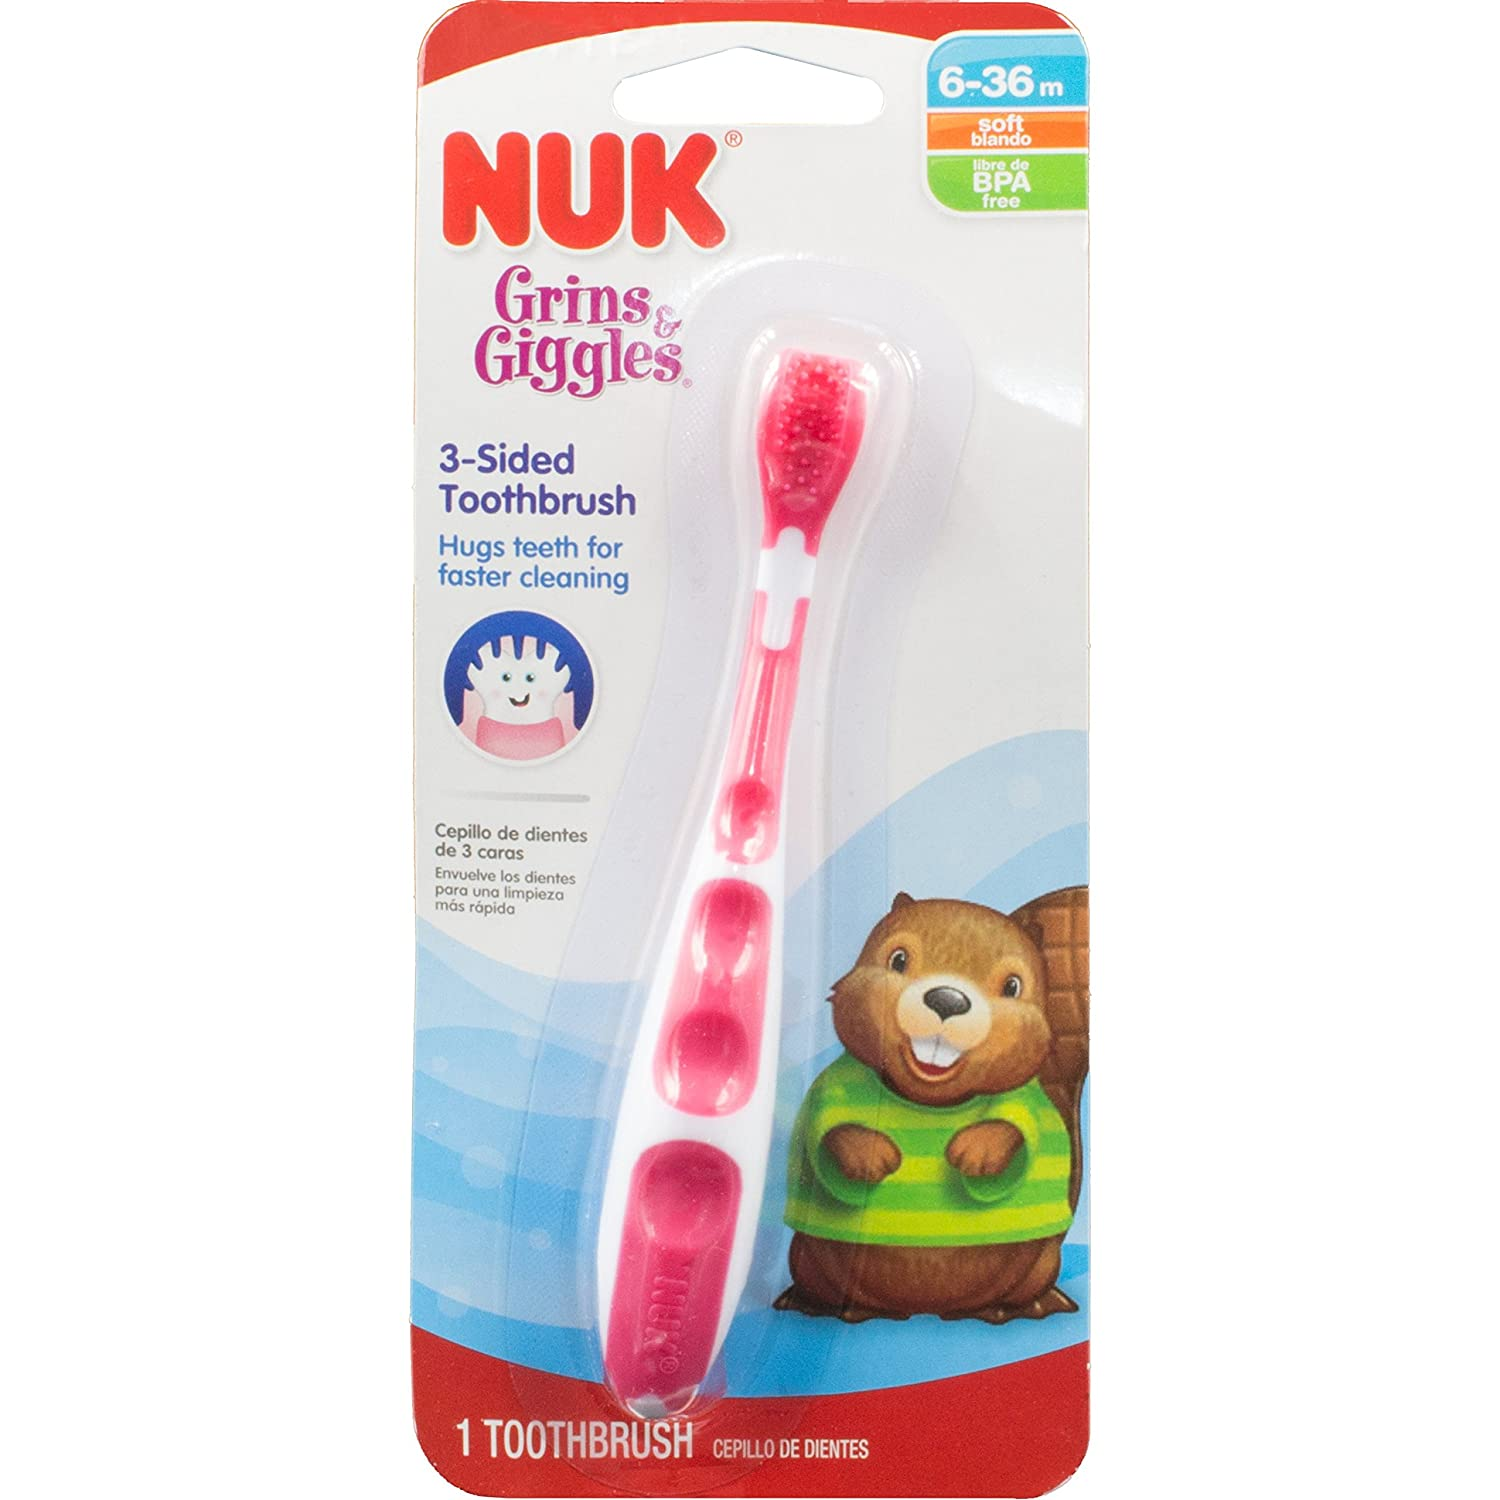 Amazon.com: NUK Grins & Giggles 3-Sided Toothbrush, Toddler, Colors May Vary (Discontinued by Manufacturer): Baby